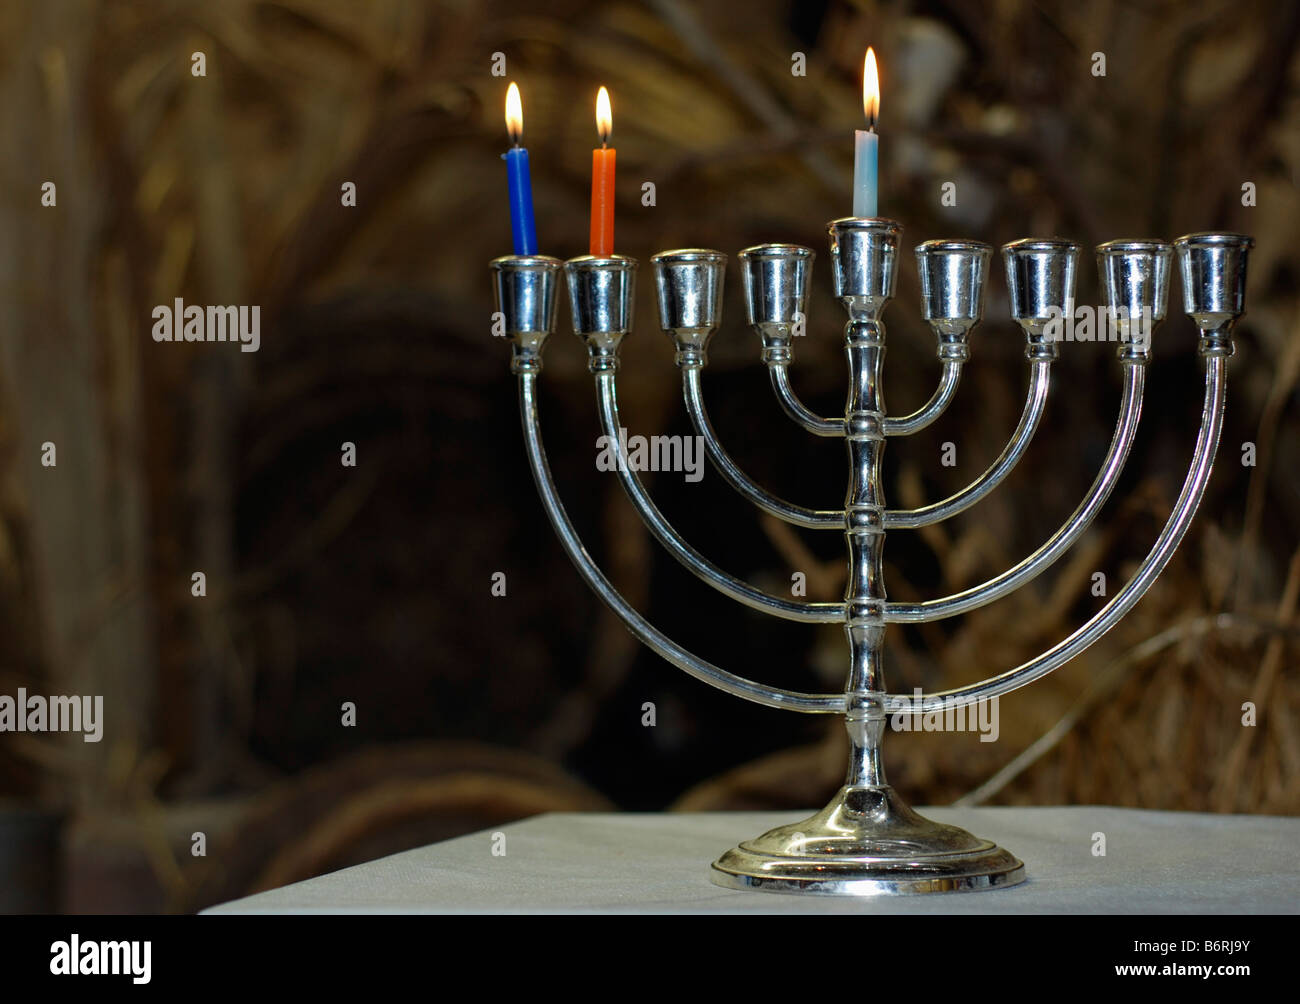 A Chanukia the main symbol of Chanukah The Jewish festival of light with 3 lit candles for the second day - Stock Image